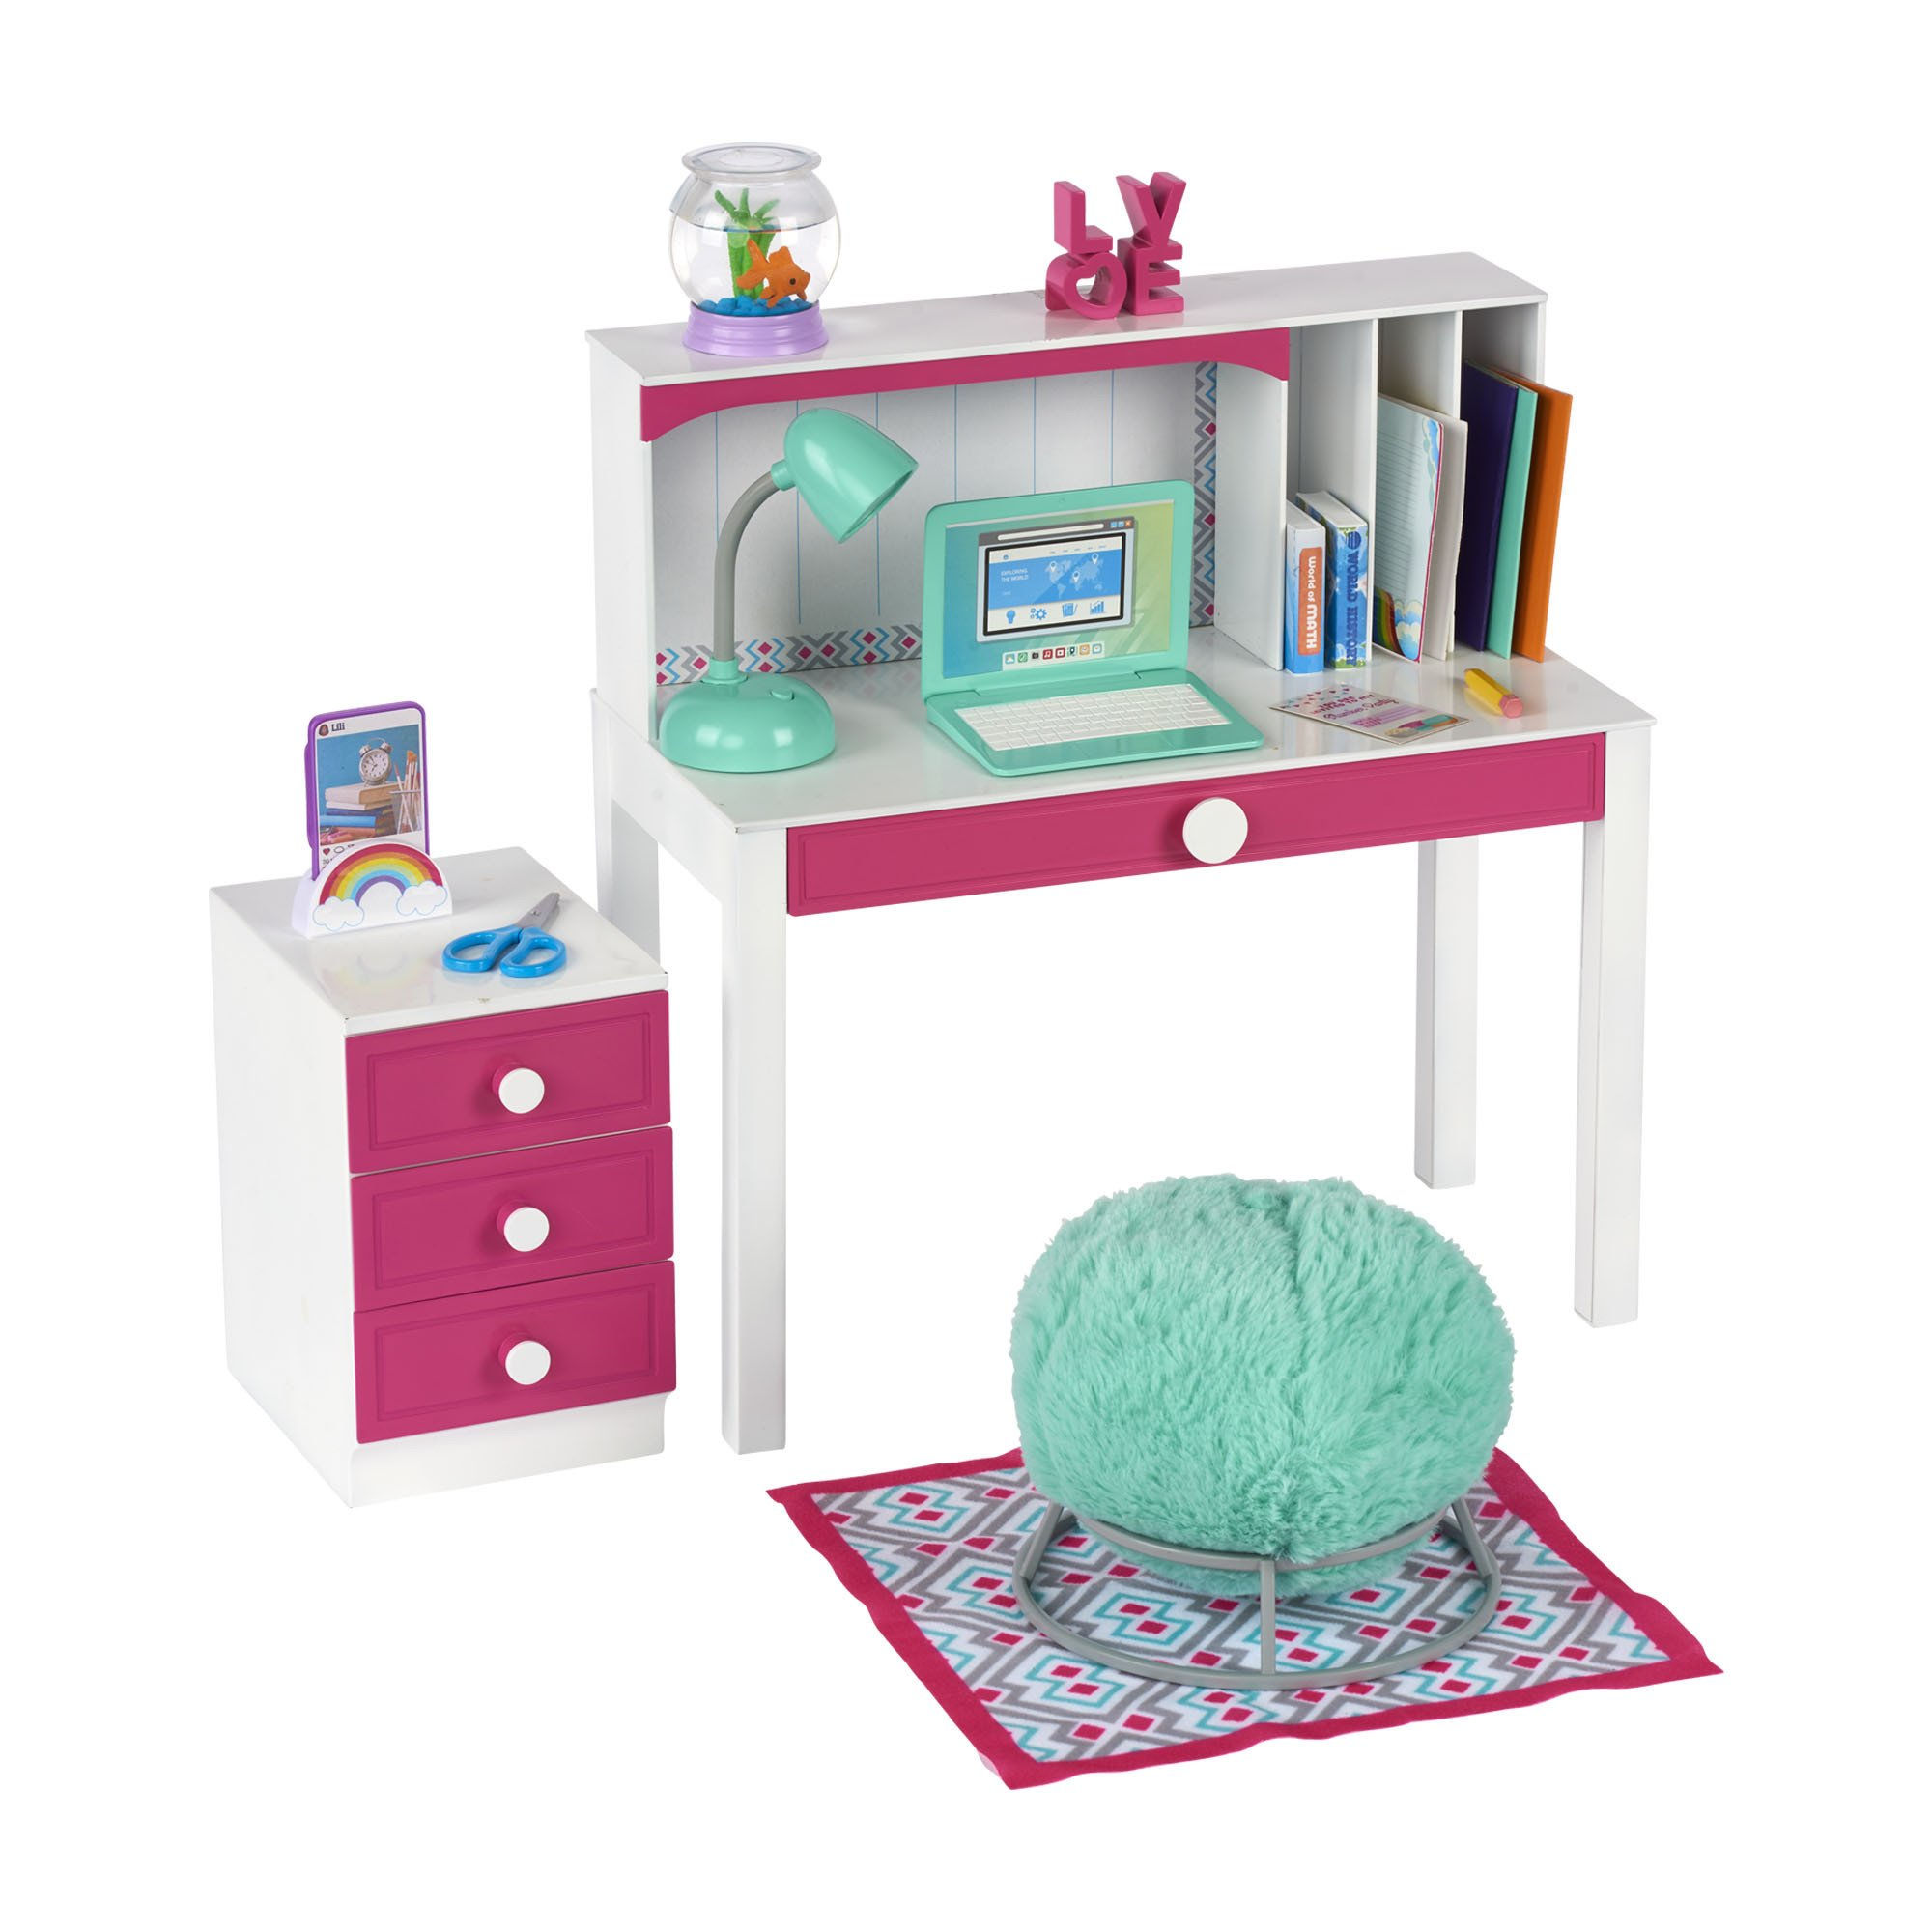 """Walmart Bedroom End Tables Inspirational My Life as Desk Play Set for 18\"""" Dolls 24 Pieces Walmart"""